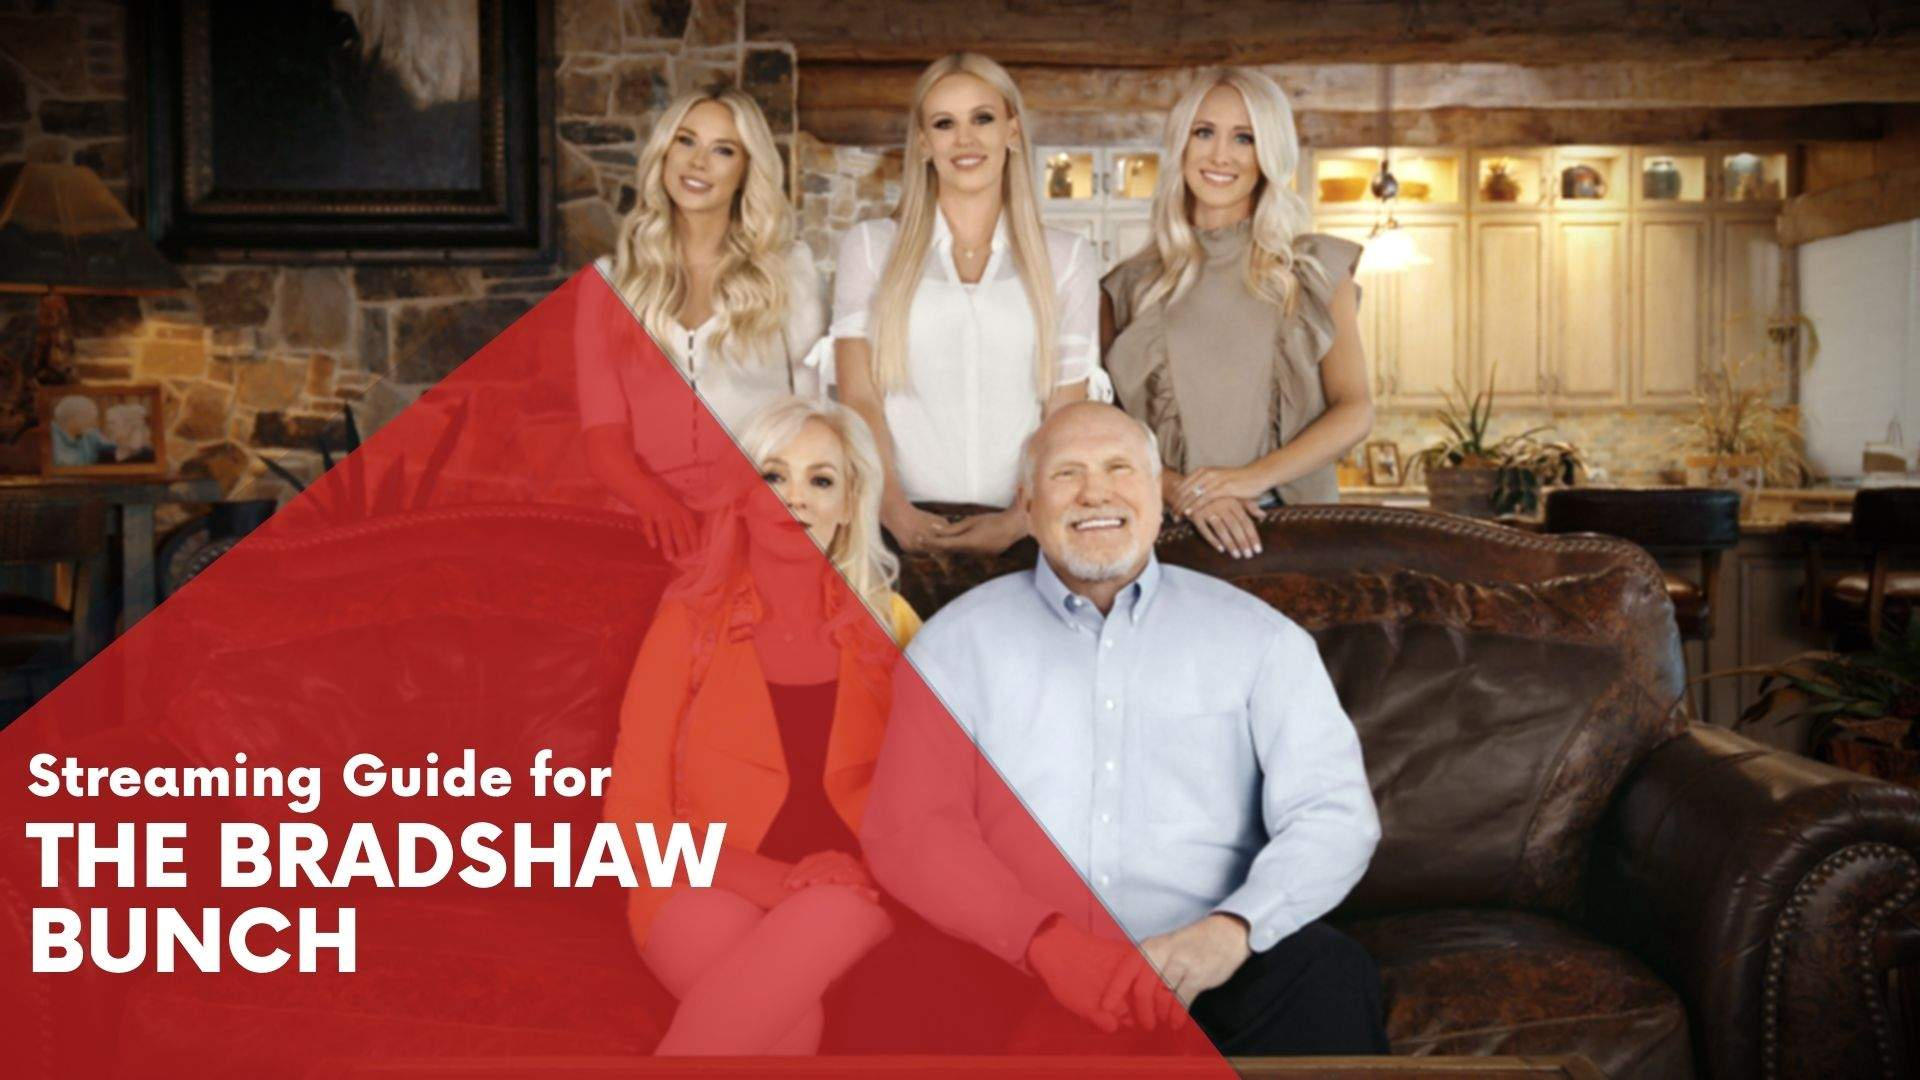 The Bradshaw Bunch Streaming Guide 1